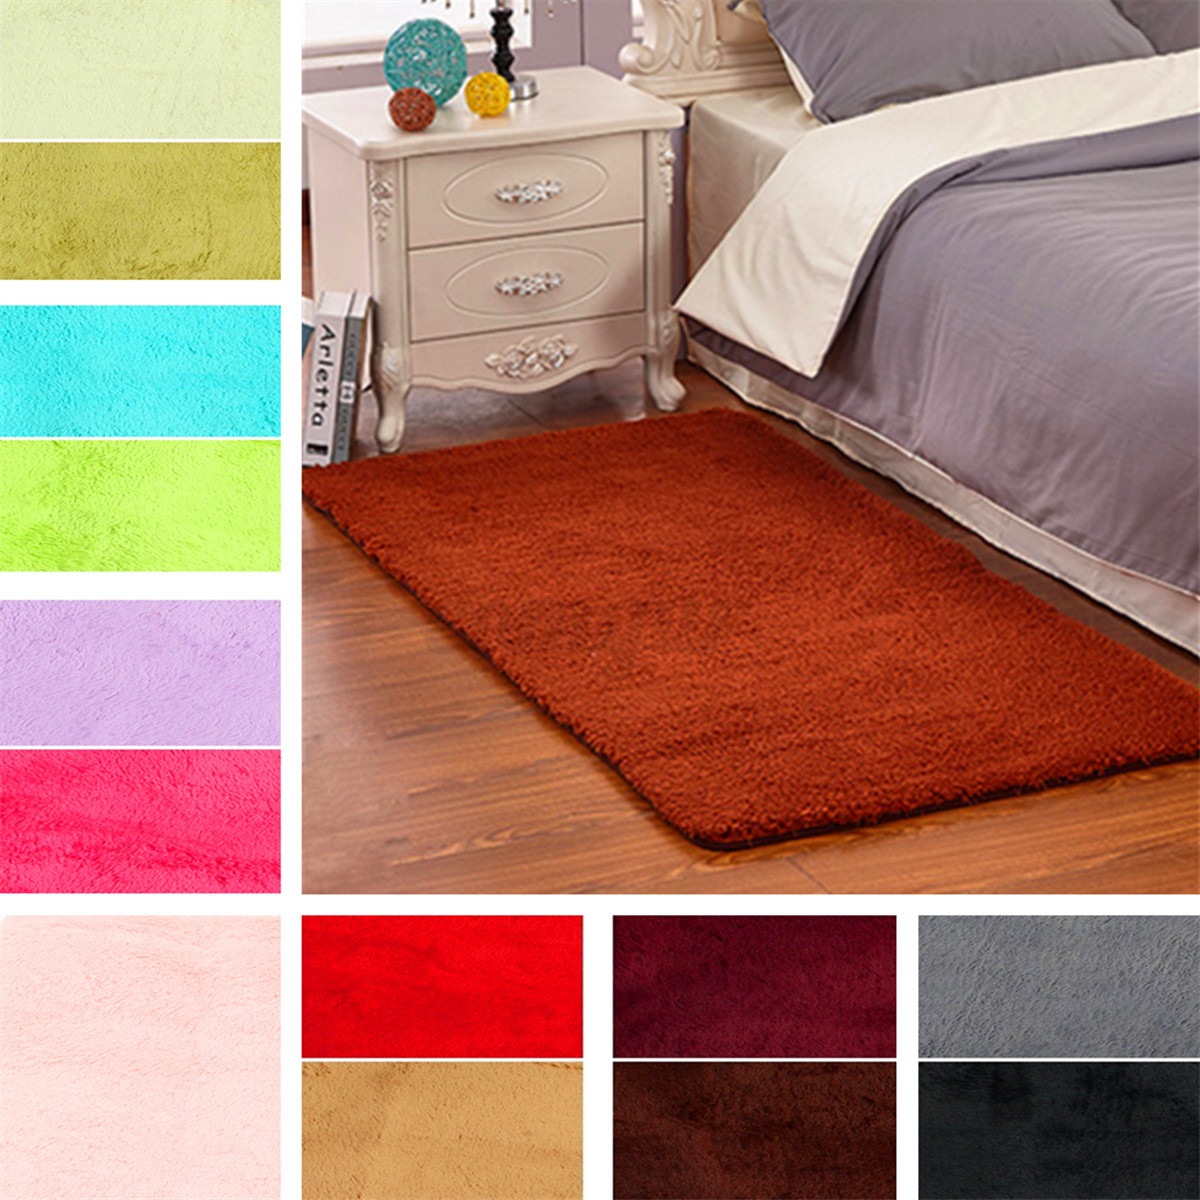 area rugs for bedroom 60x120cm anti skid shaggy fluffy area rug bedroom carpet 14027